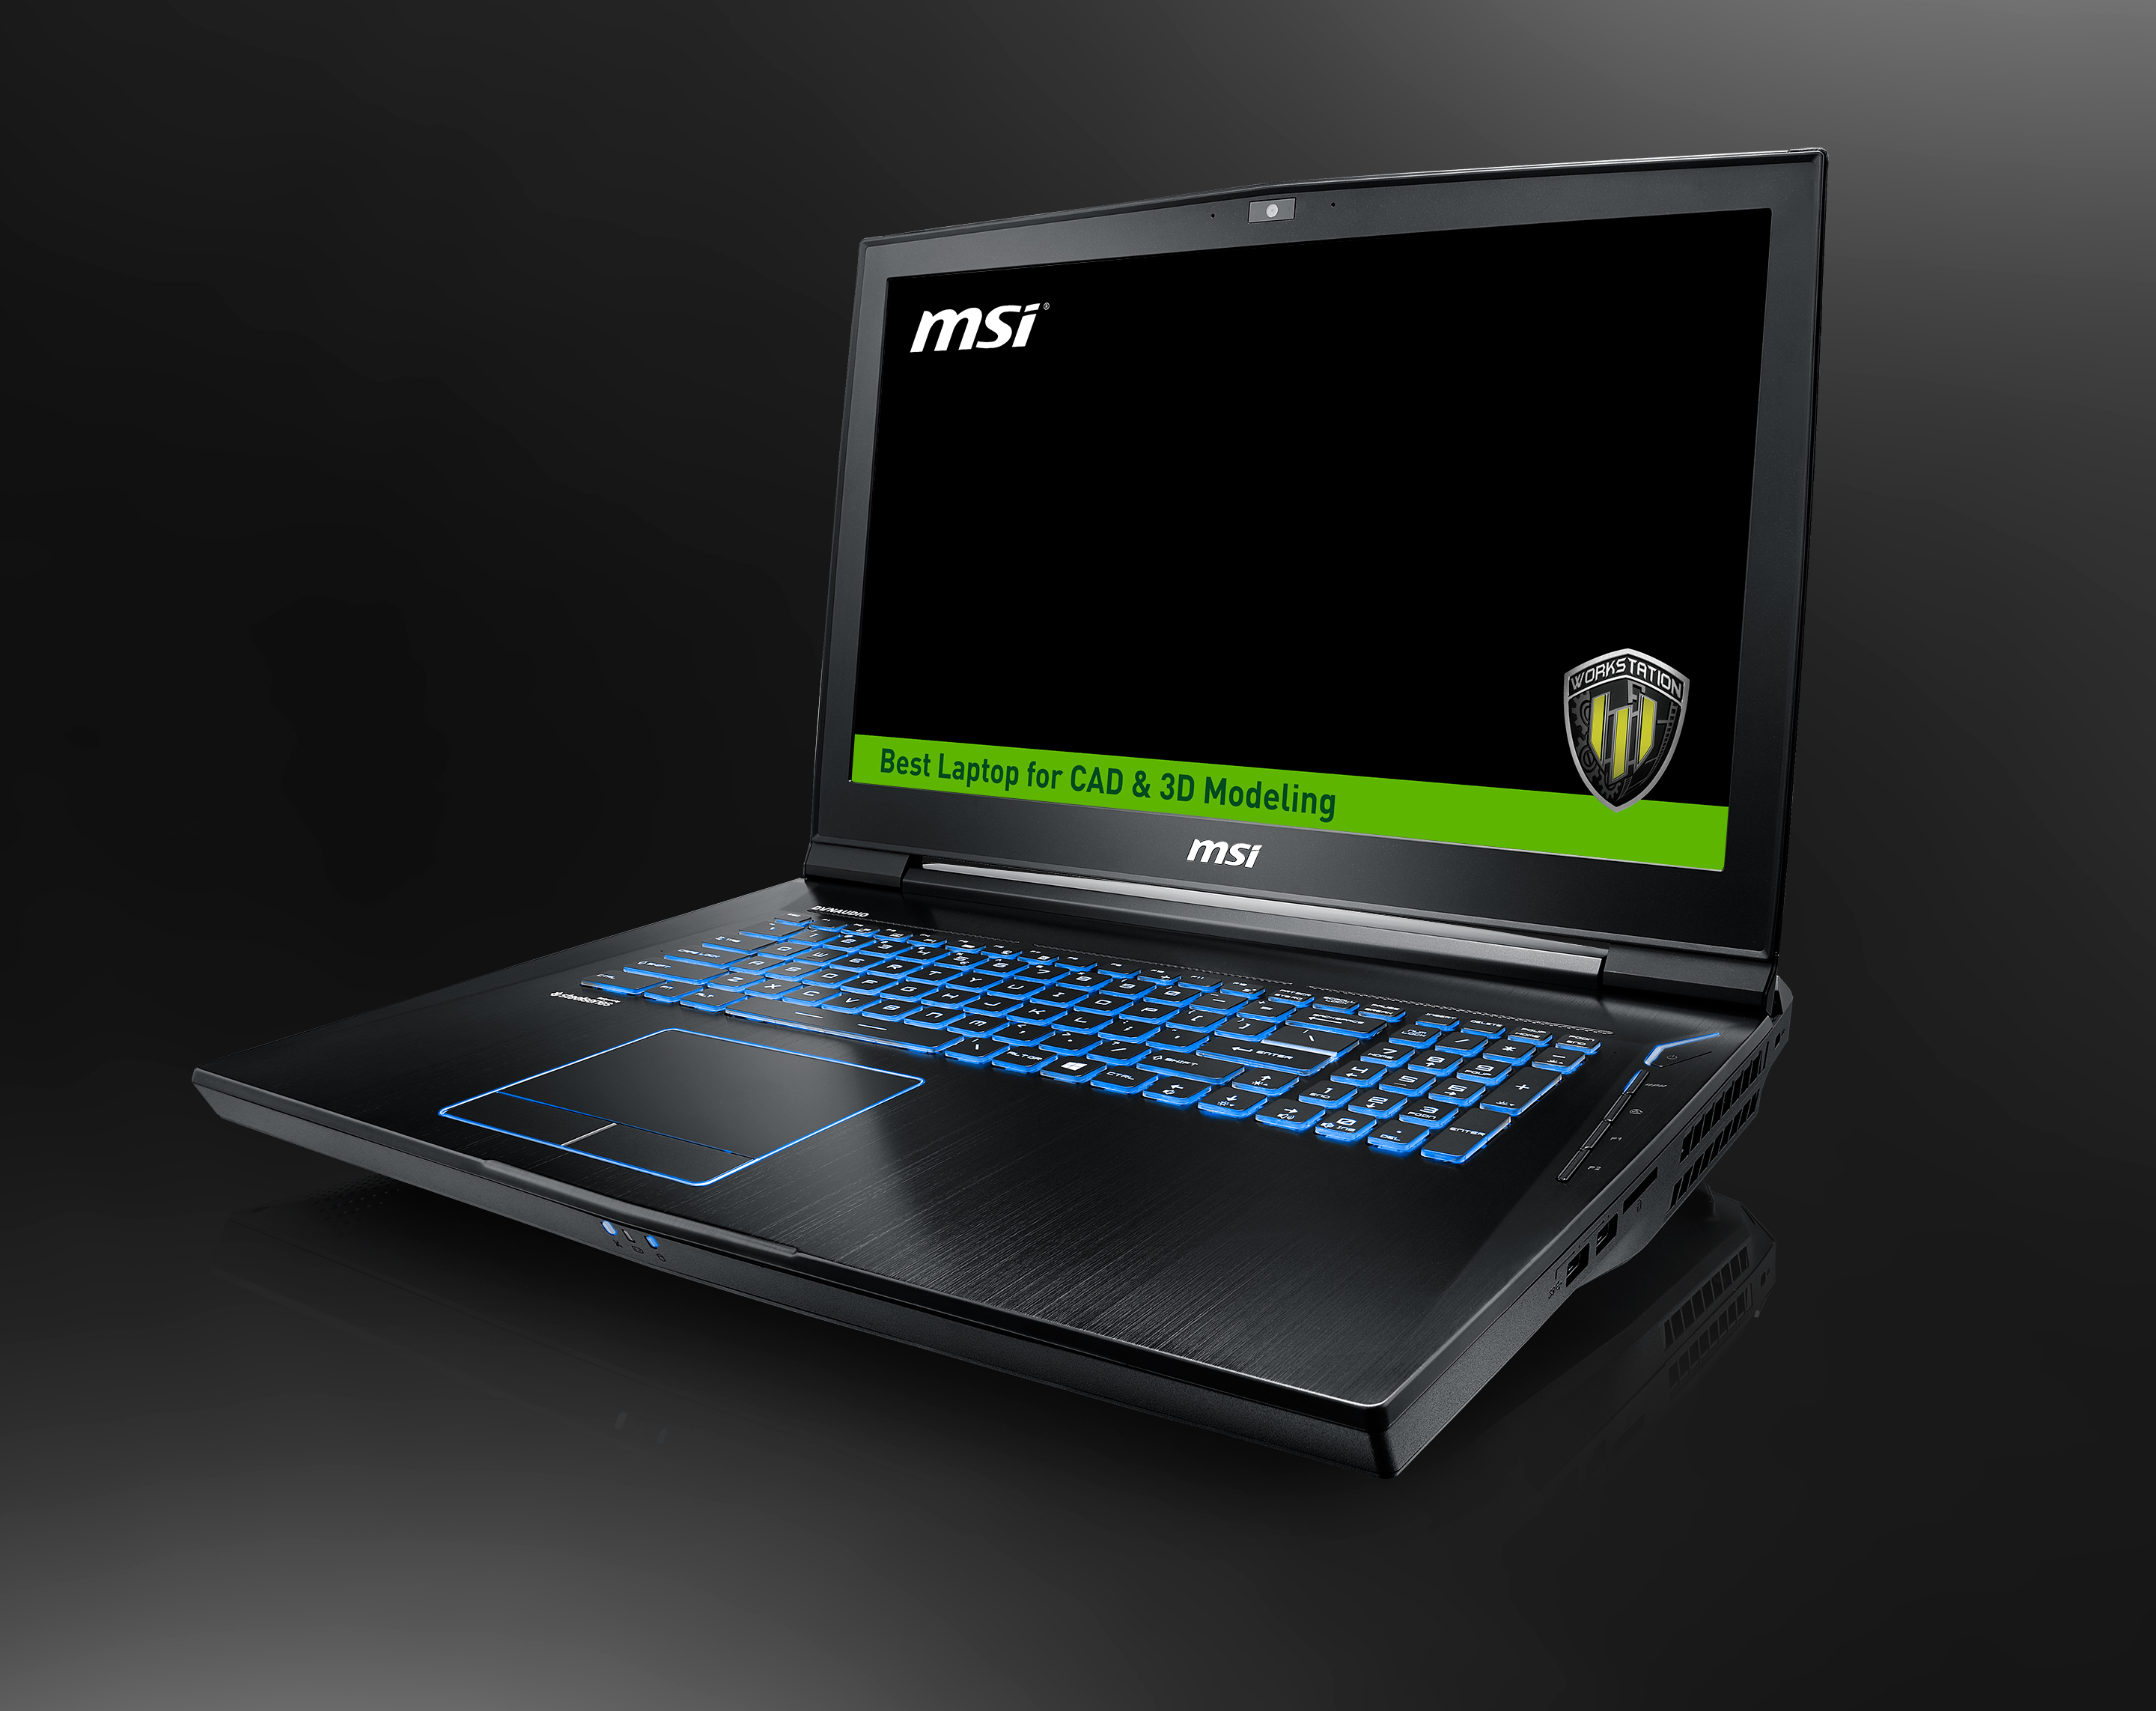 MSI Workstation WT73VR Photo 13